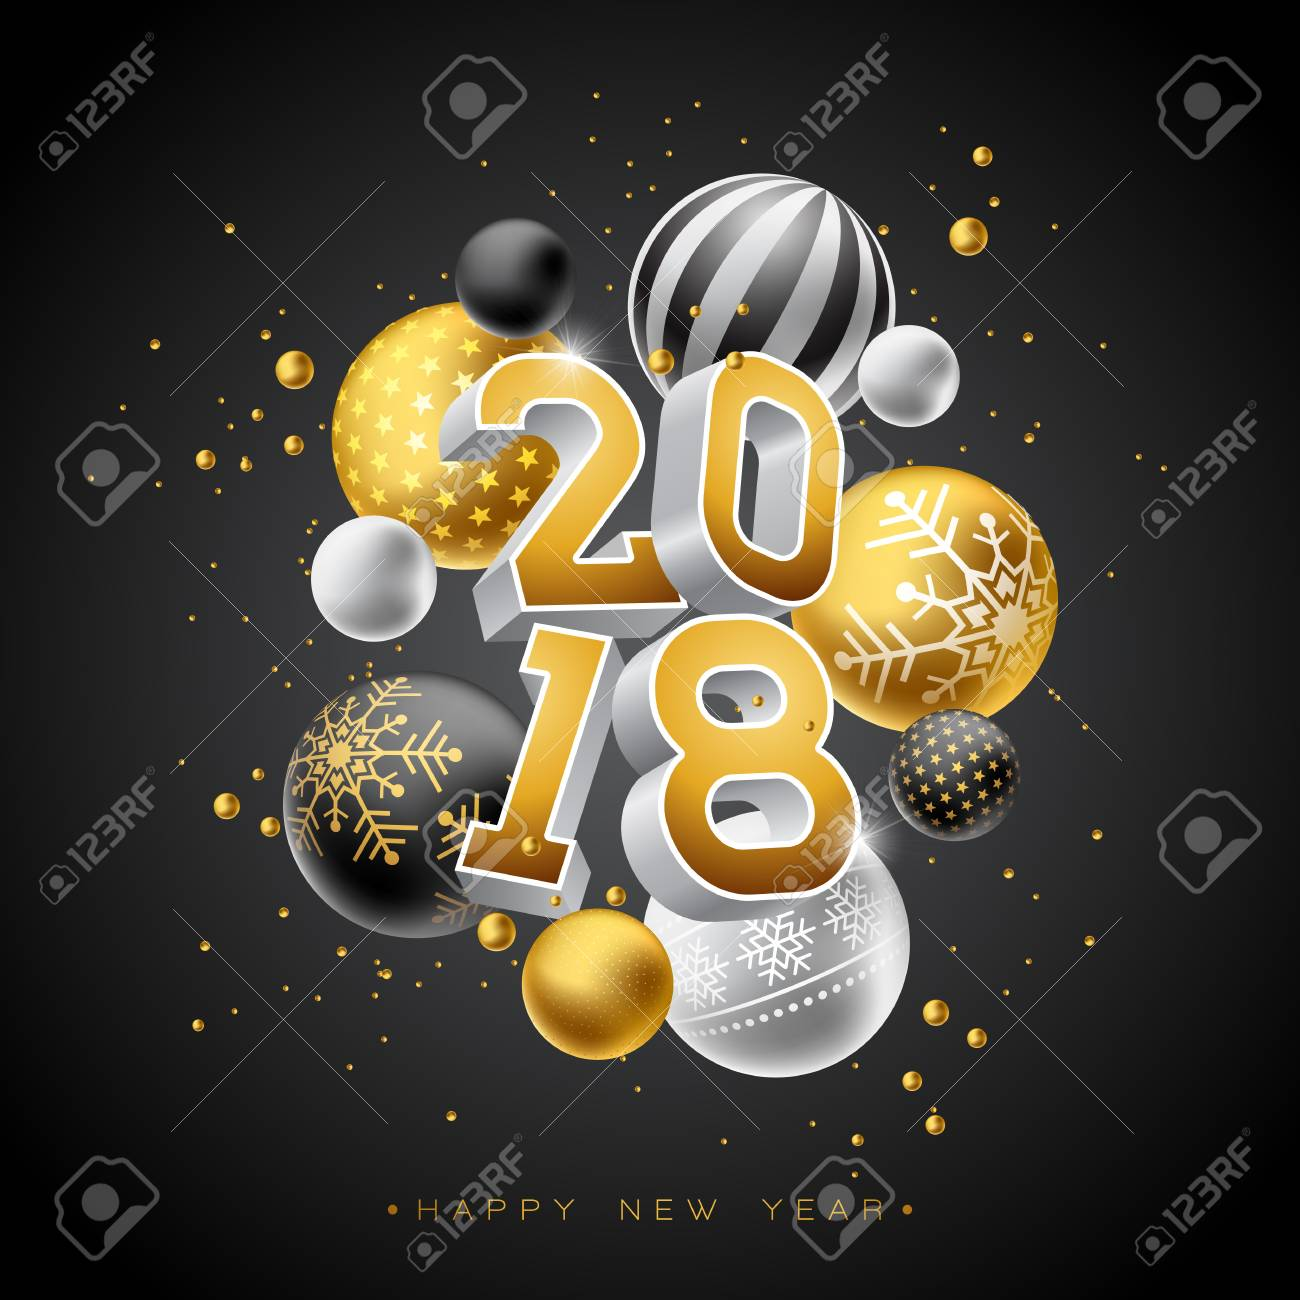 happy new year 2018 illustration with gold 3d number and ornamental ball on black background